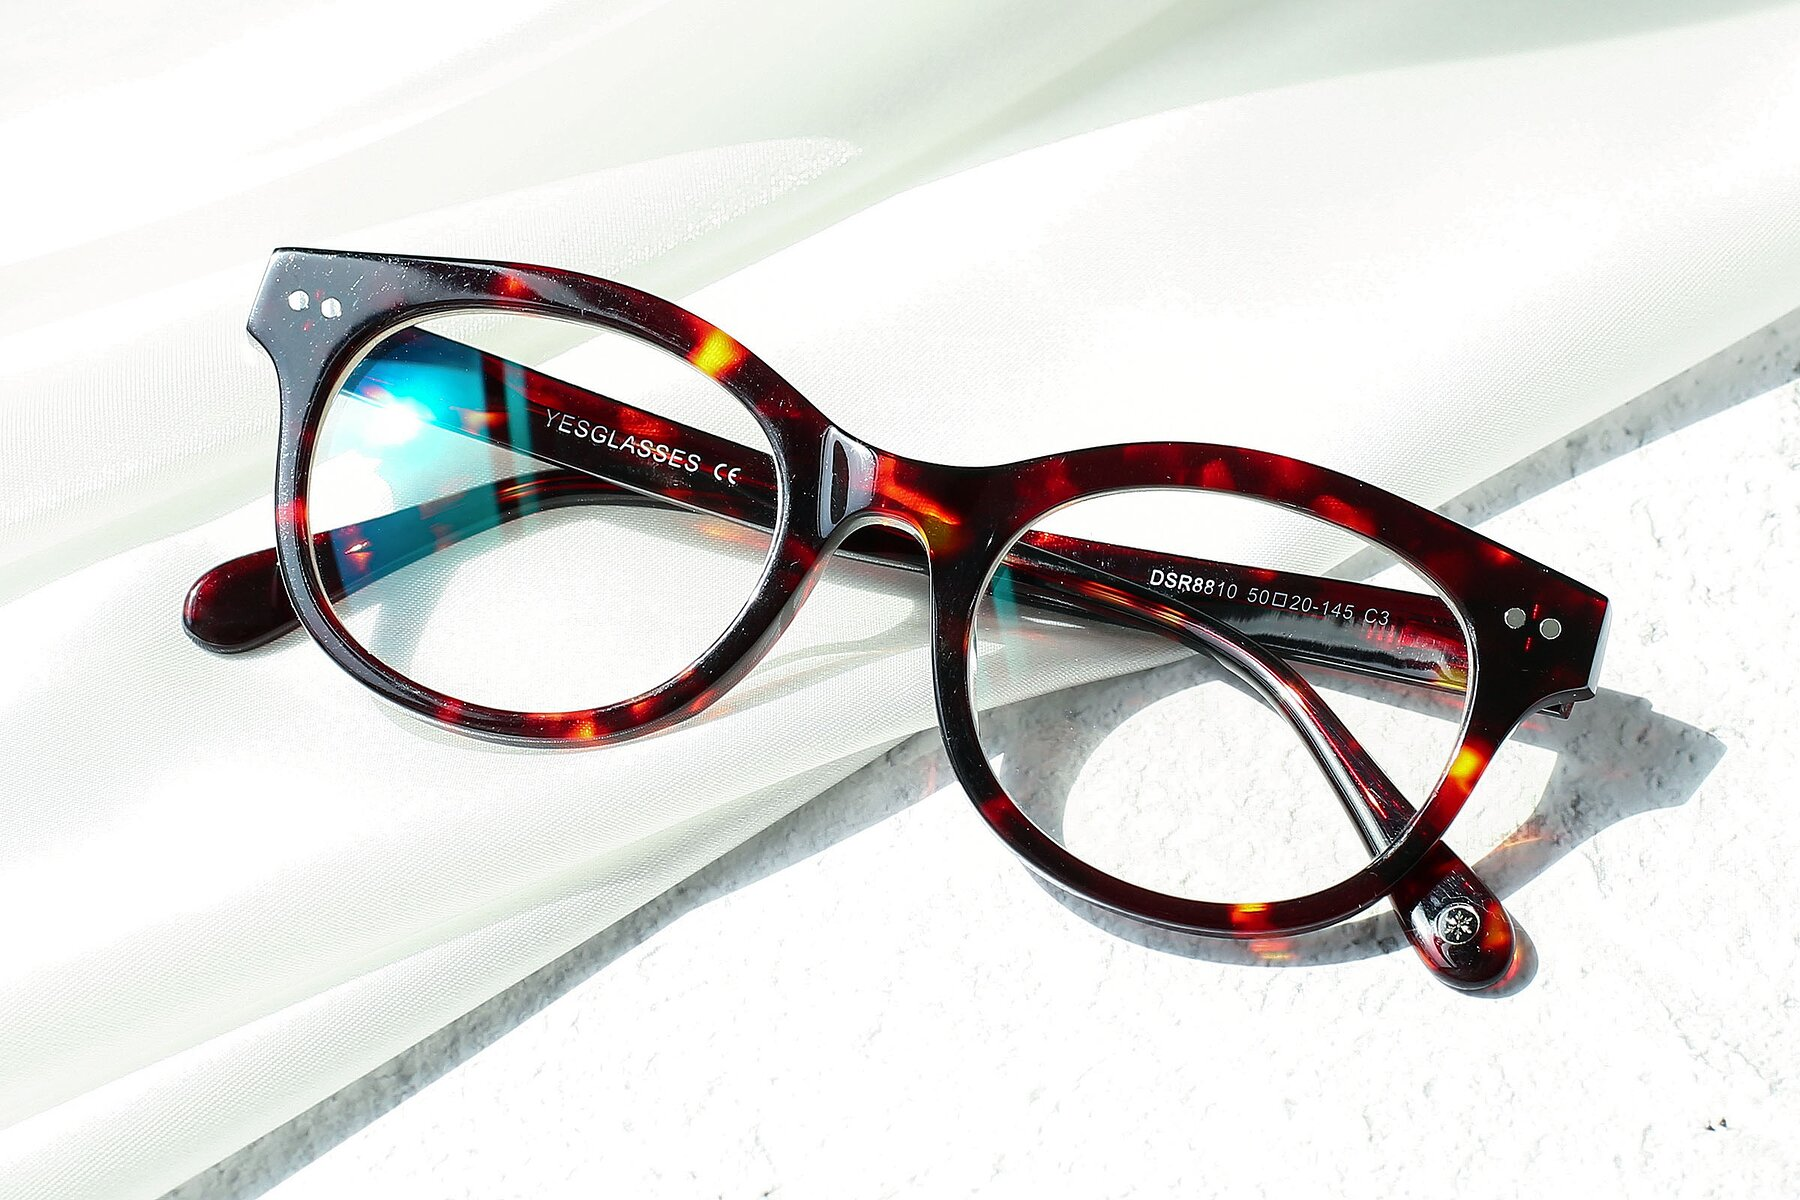 Women's lifestyle photography #1 of DSR8810 in Wine Tortoise with Clear Eyeglass Lenses